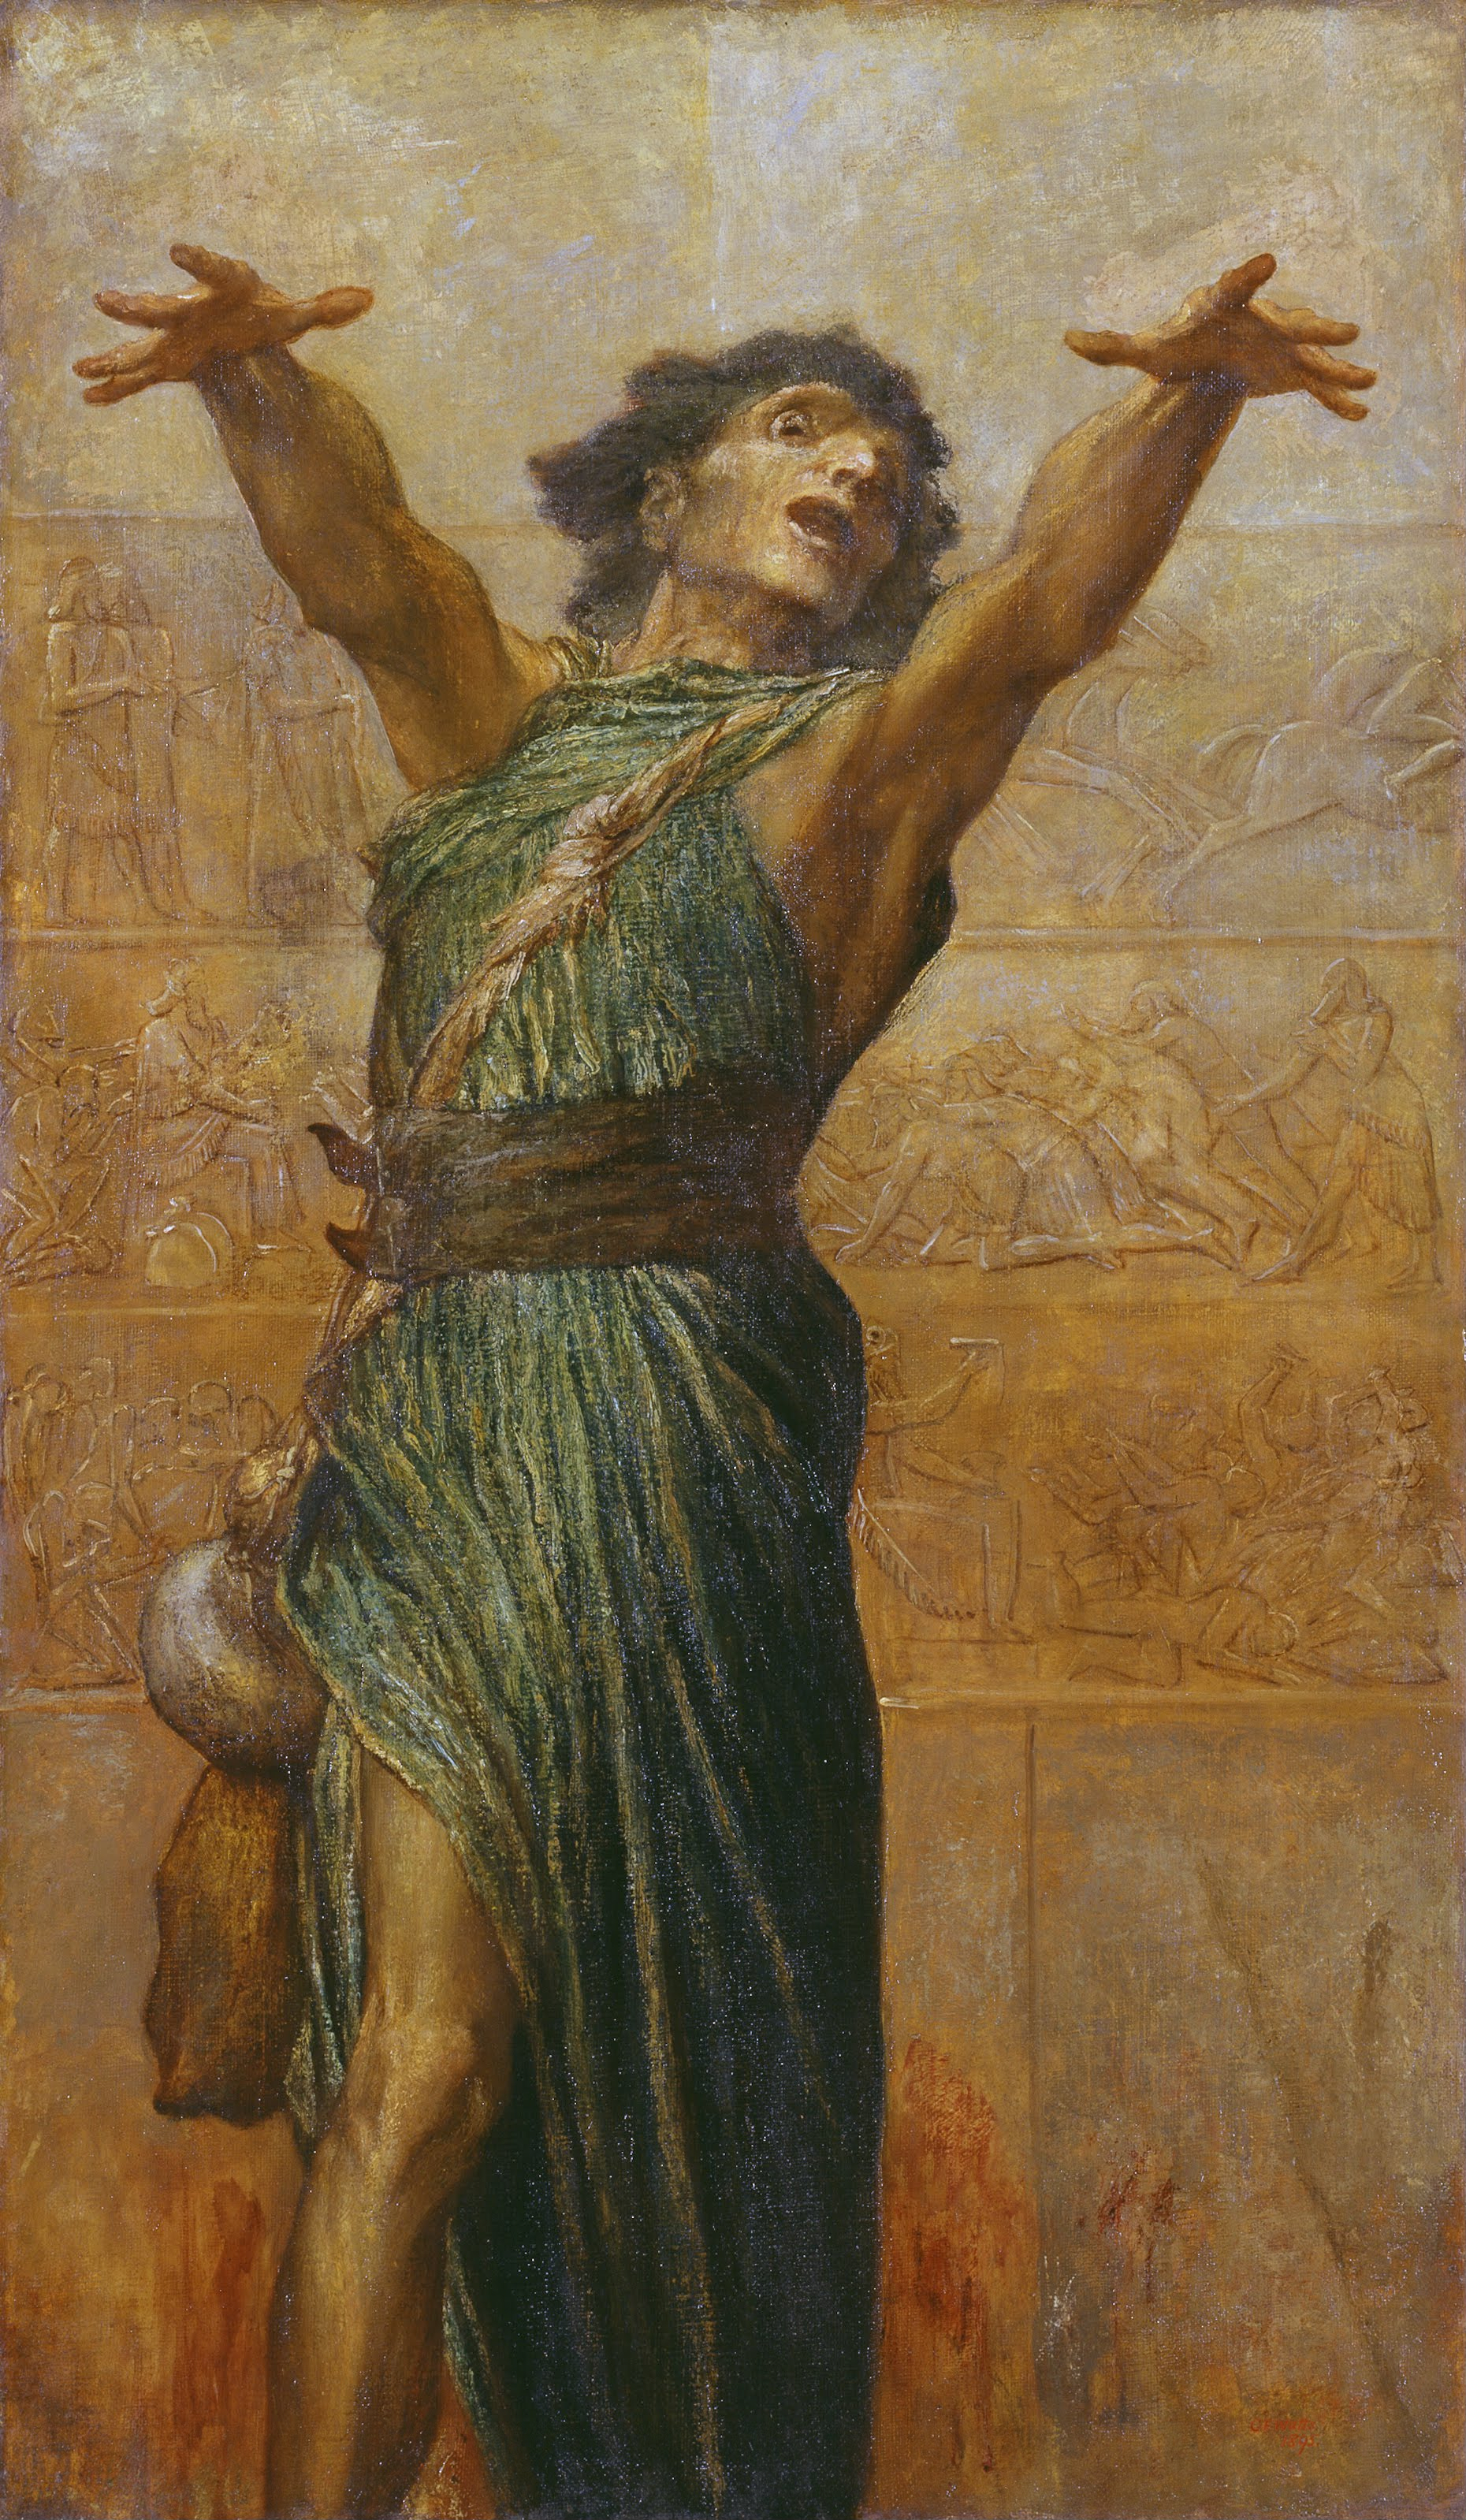 George Frederic Watts - Page 2 George_Frederic_Watts_-_Jonah_-_Google_Art_Project